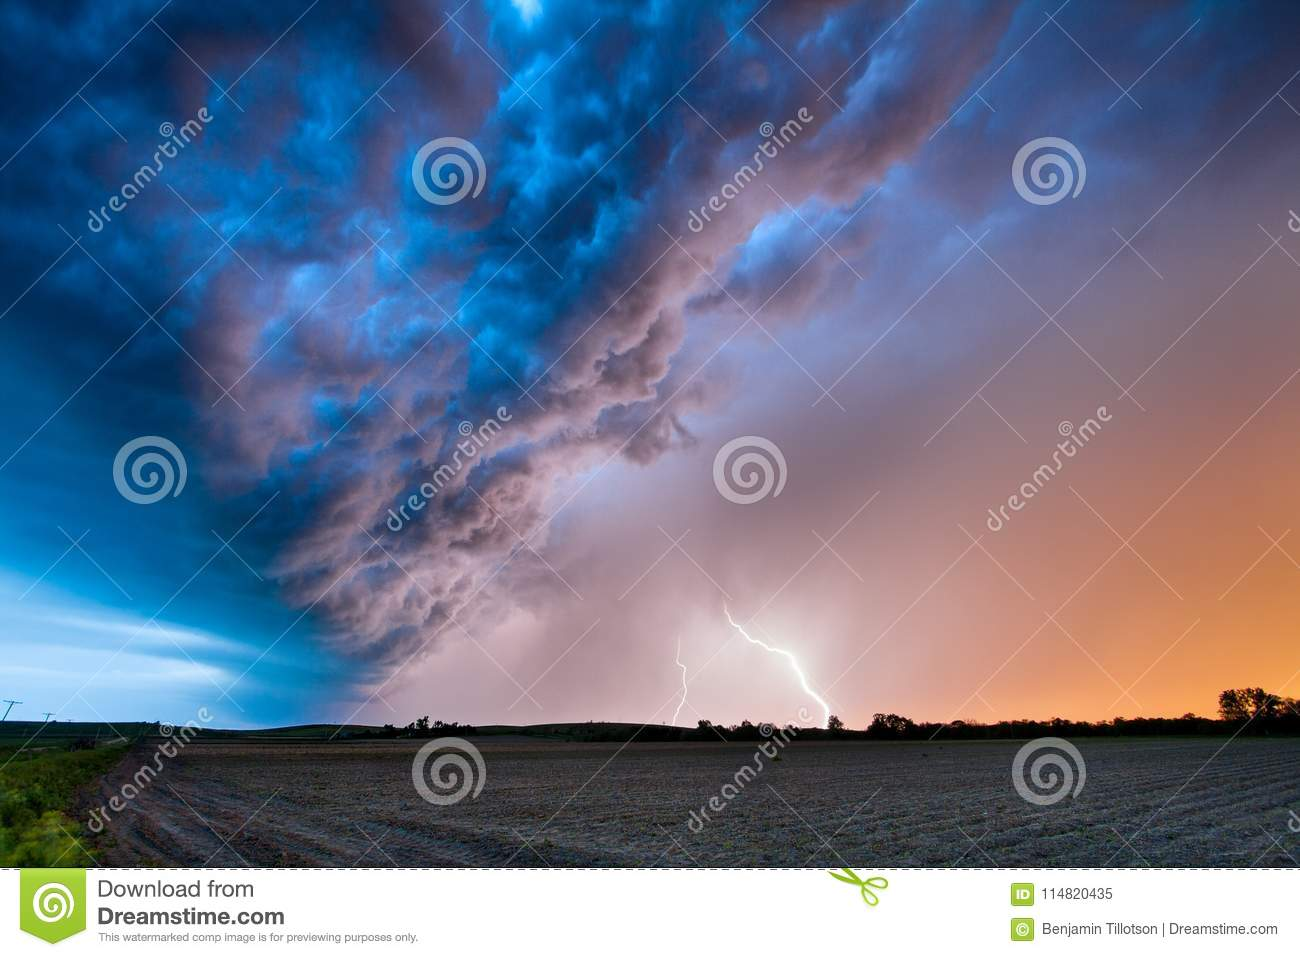 A Spring Thunderstorm at Sunset